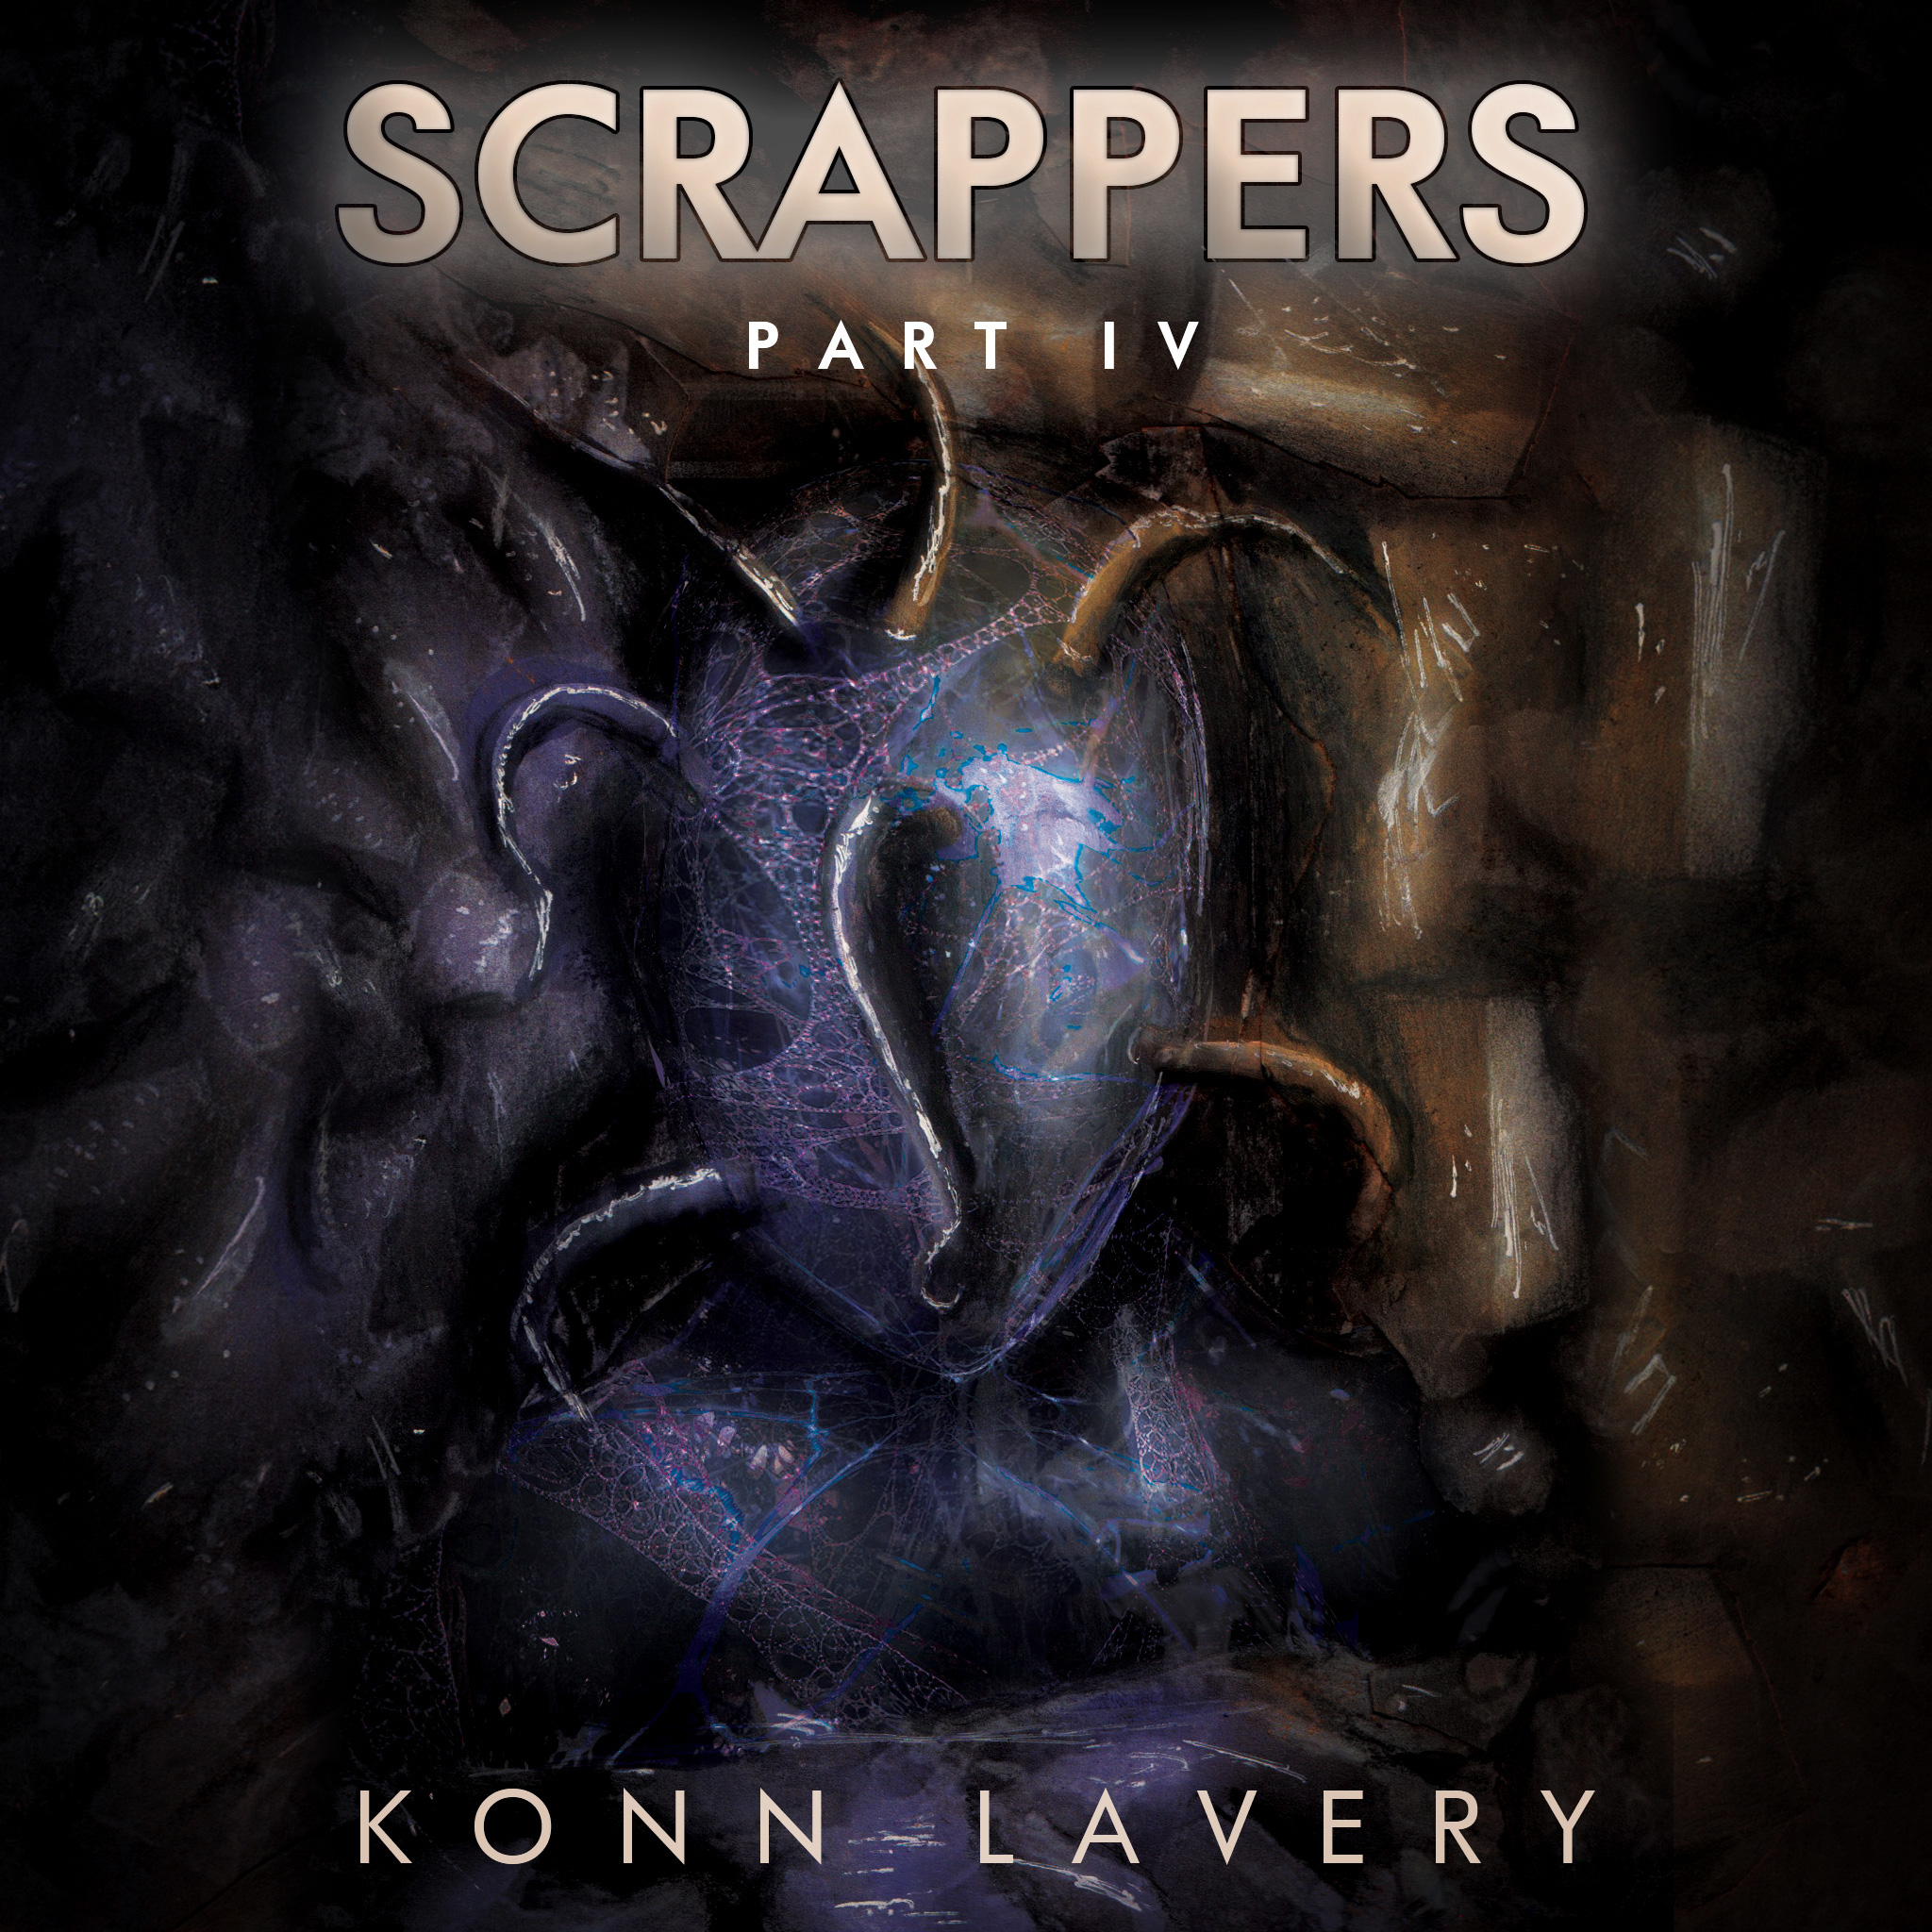 Scrappers Part IV by Konn Lavery